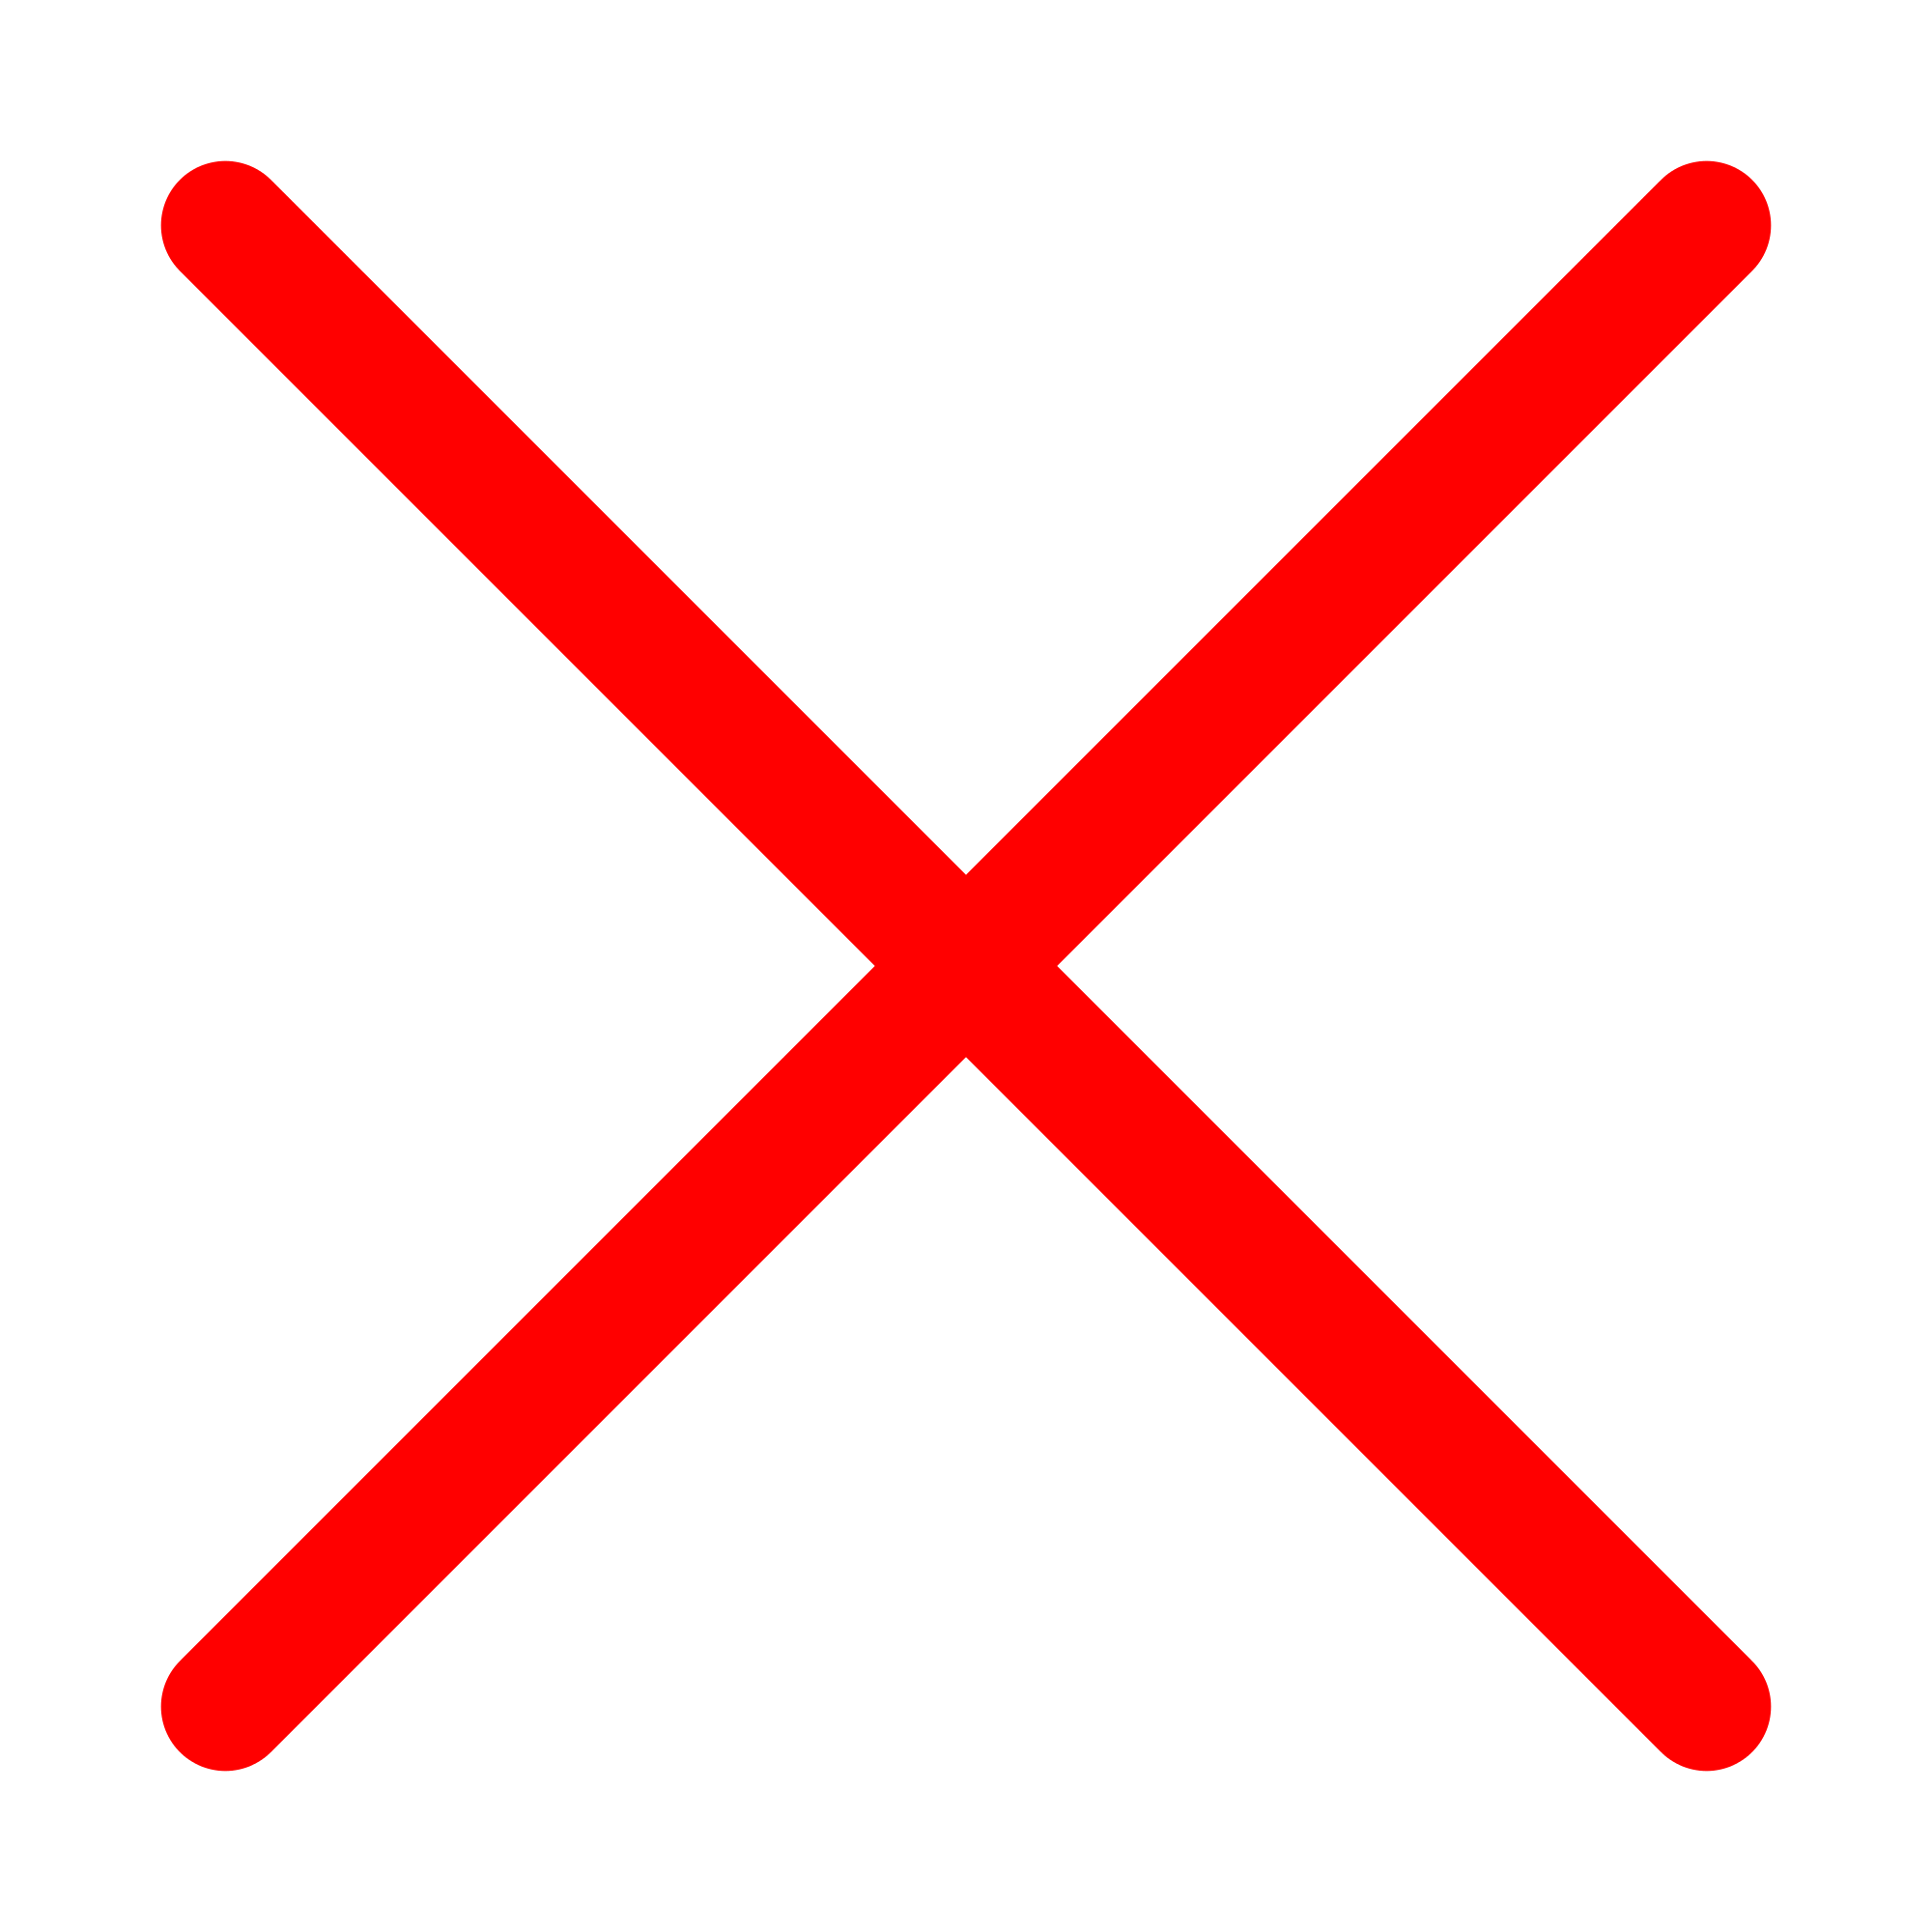 Red Cross clipart false File:Red Wikimedia Cross svg Commons